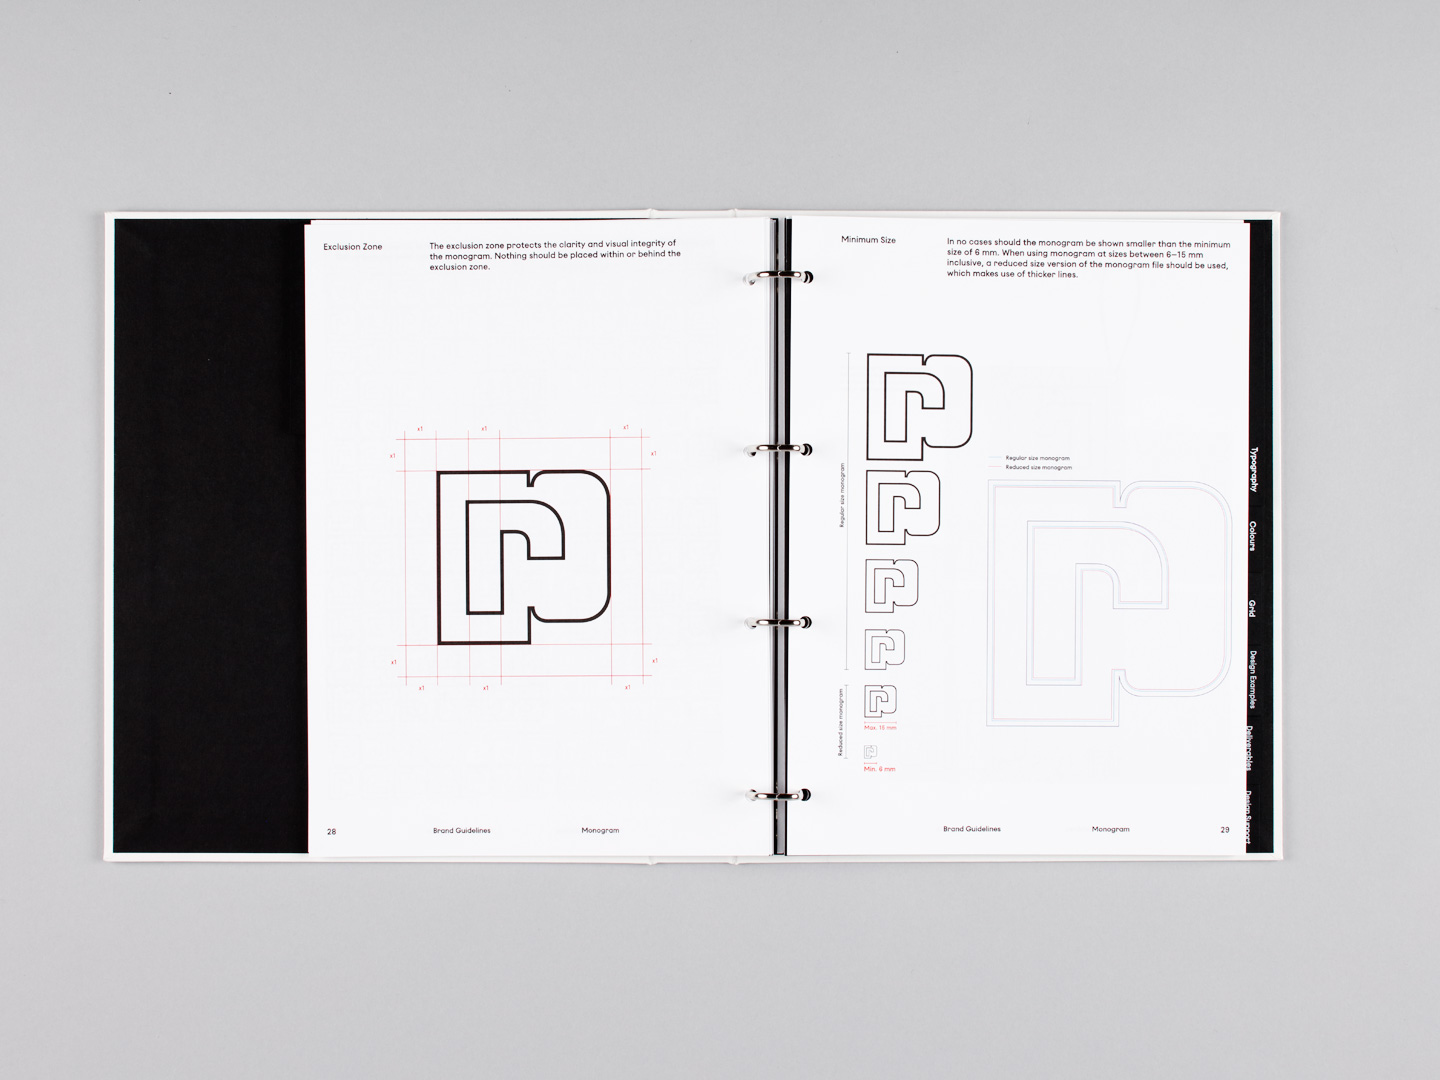 Brand identity document for French fashion label Paco Rabanne by Zak Group, United Kingdom